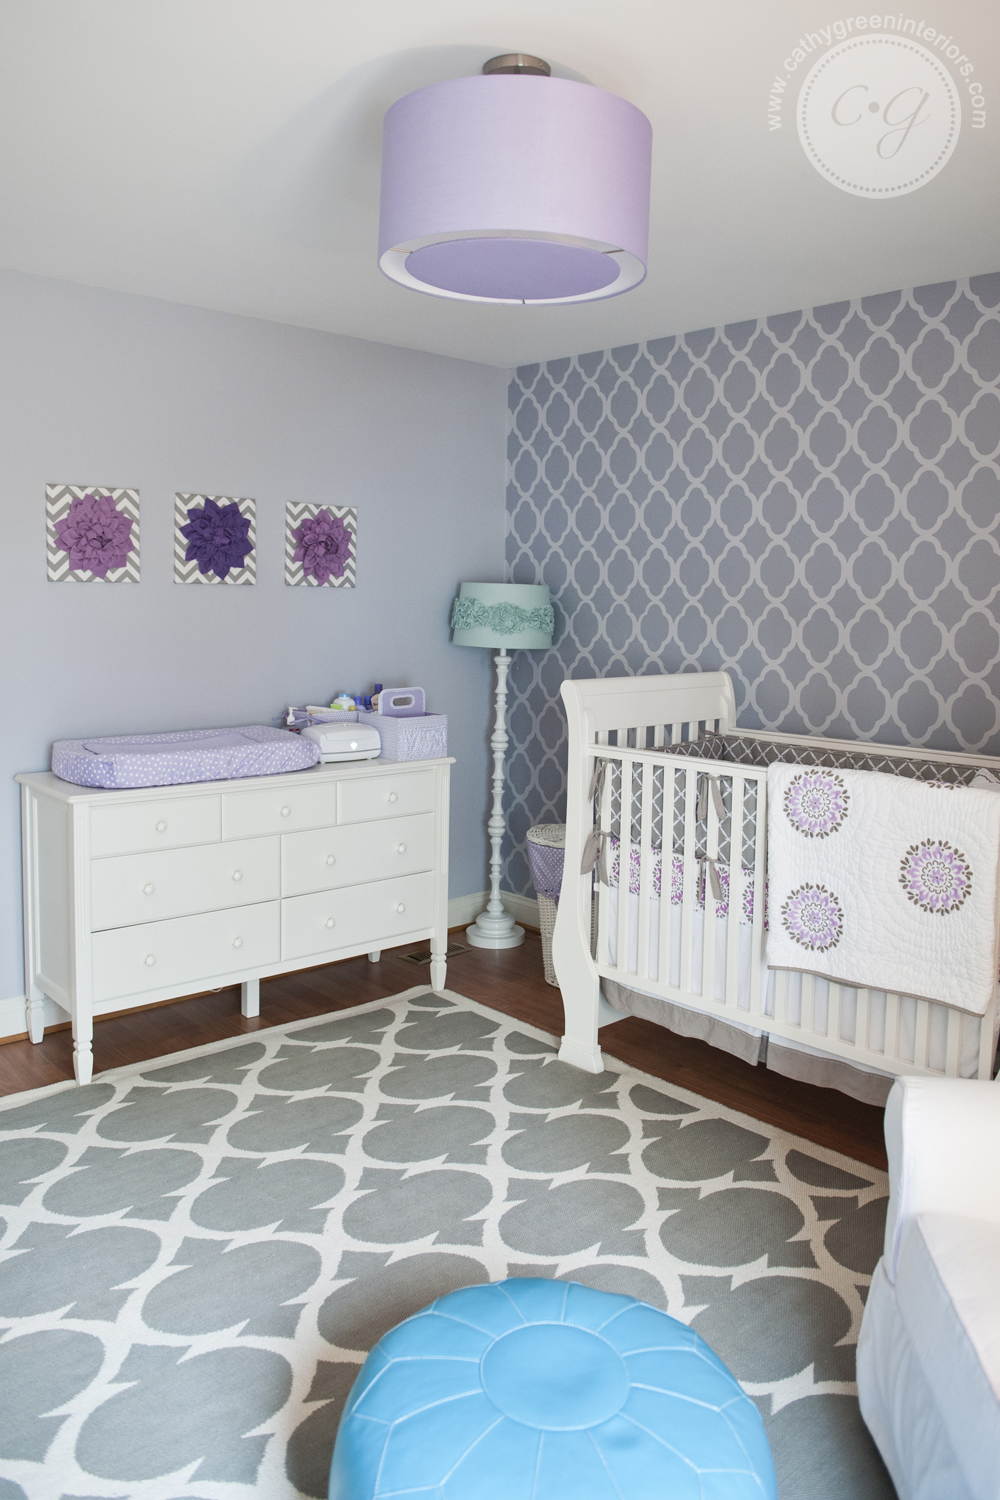 Nursery white crib and dresser, Chesterfield, VA